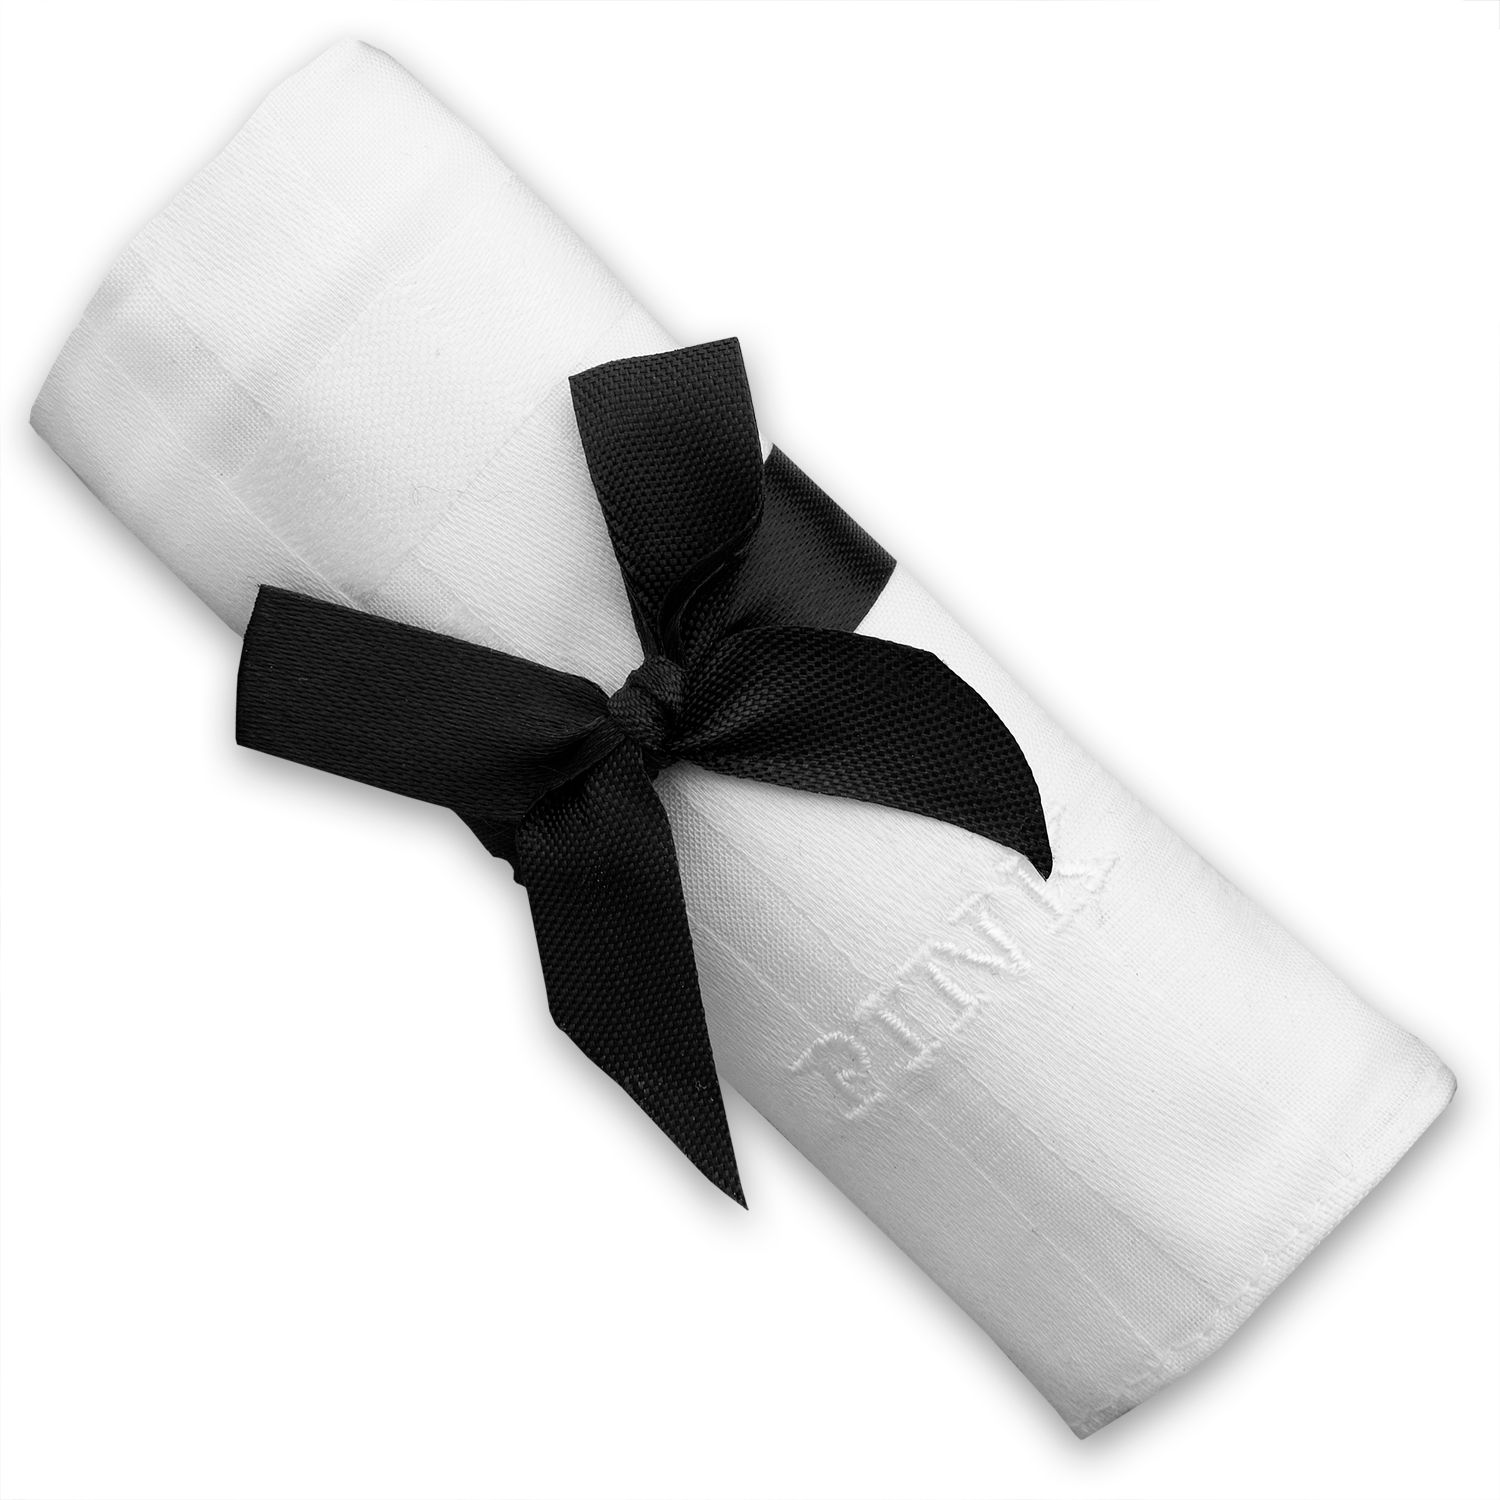 Single white hankie